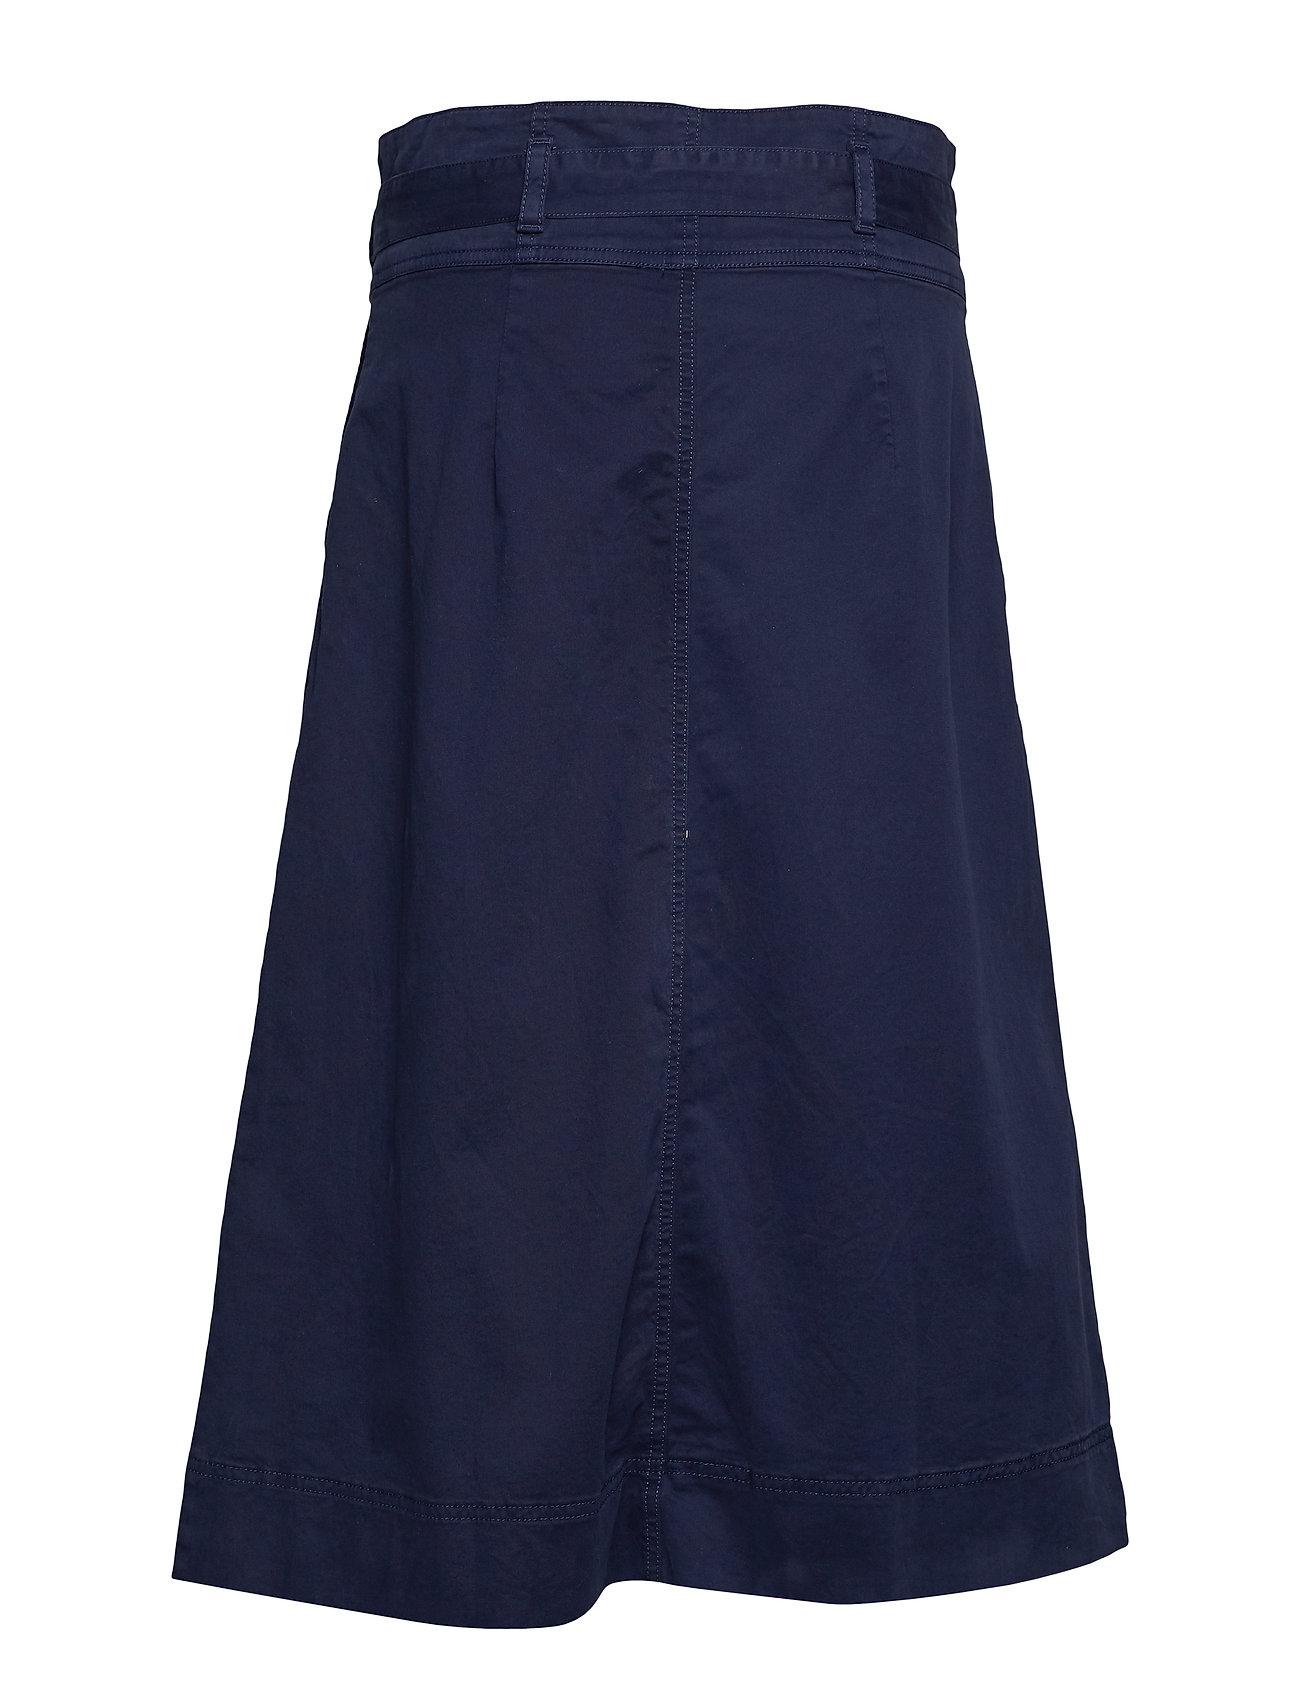 GAP    Tie-Belt Button-Front Midi Skirt  - Röcke    NAVY UNIFORM